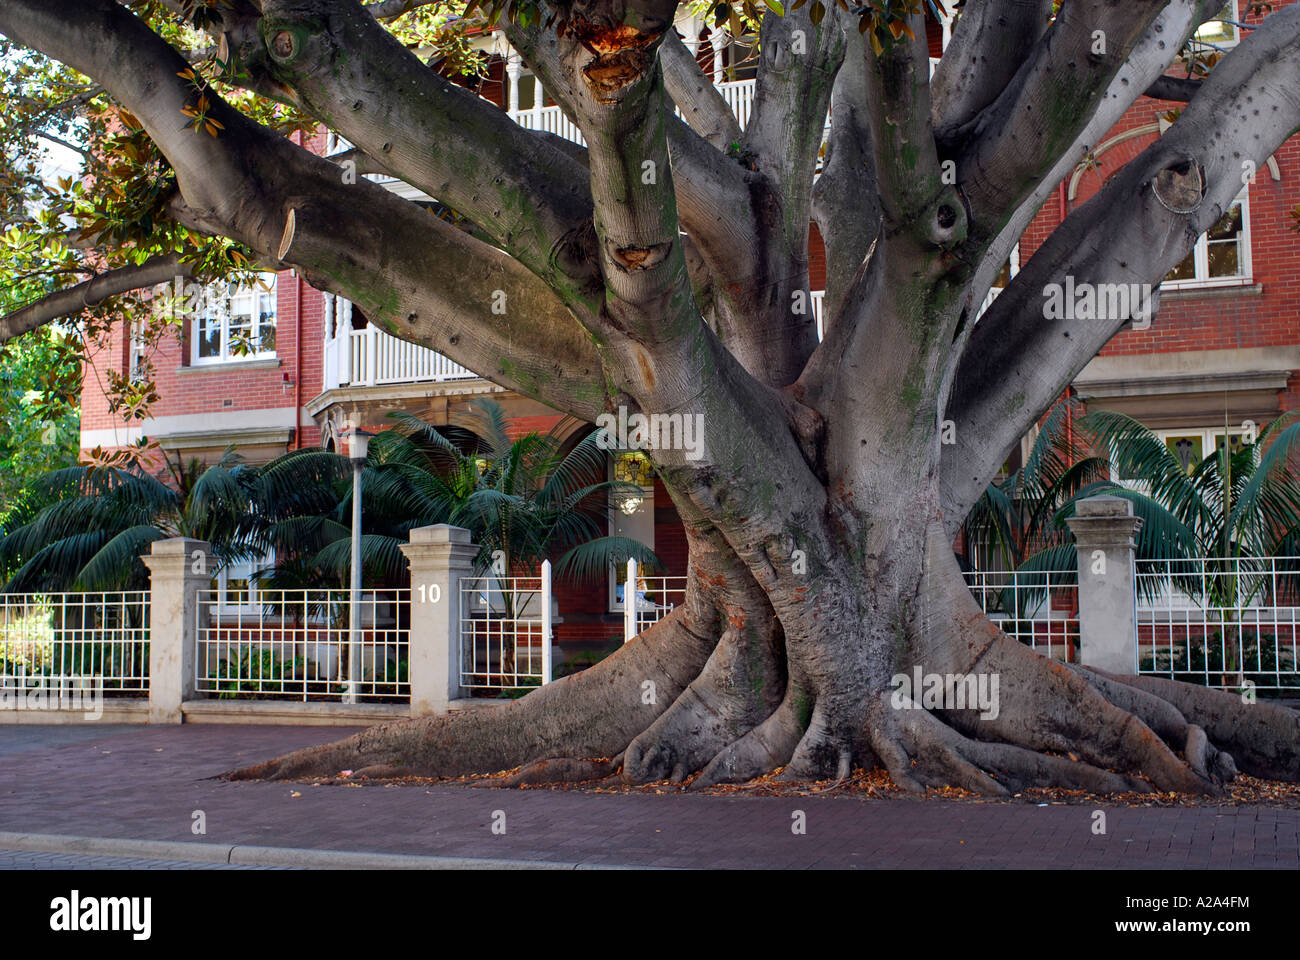 Huge Moreton Bay Fig tree, registered with and protected by the National Trust, growing in street. Perth, Western - Stock Image